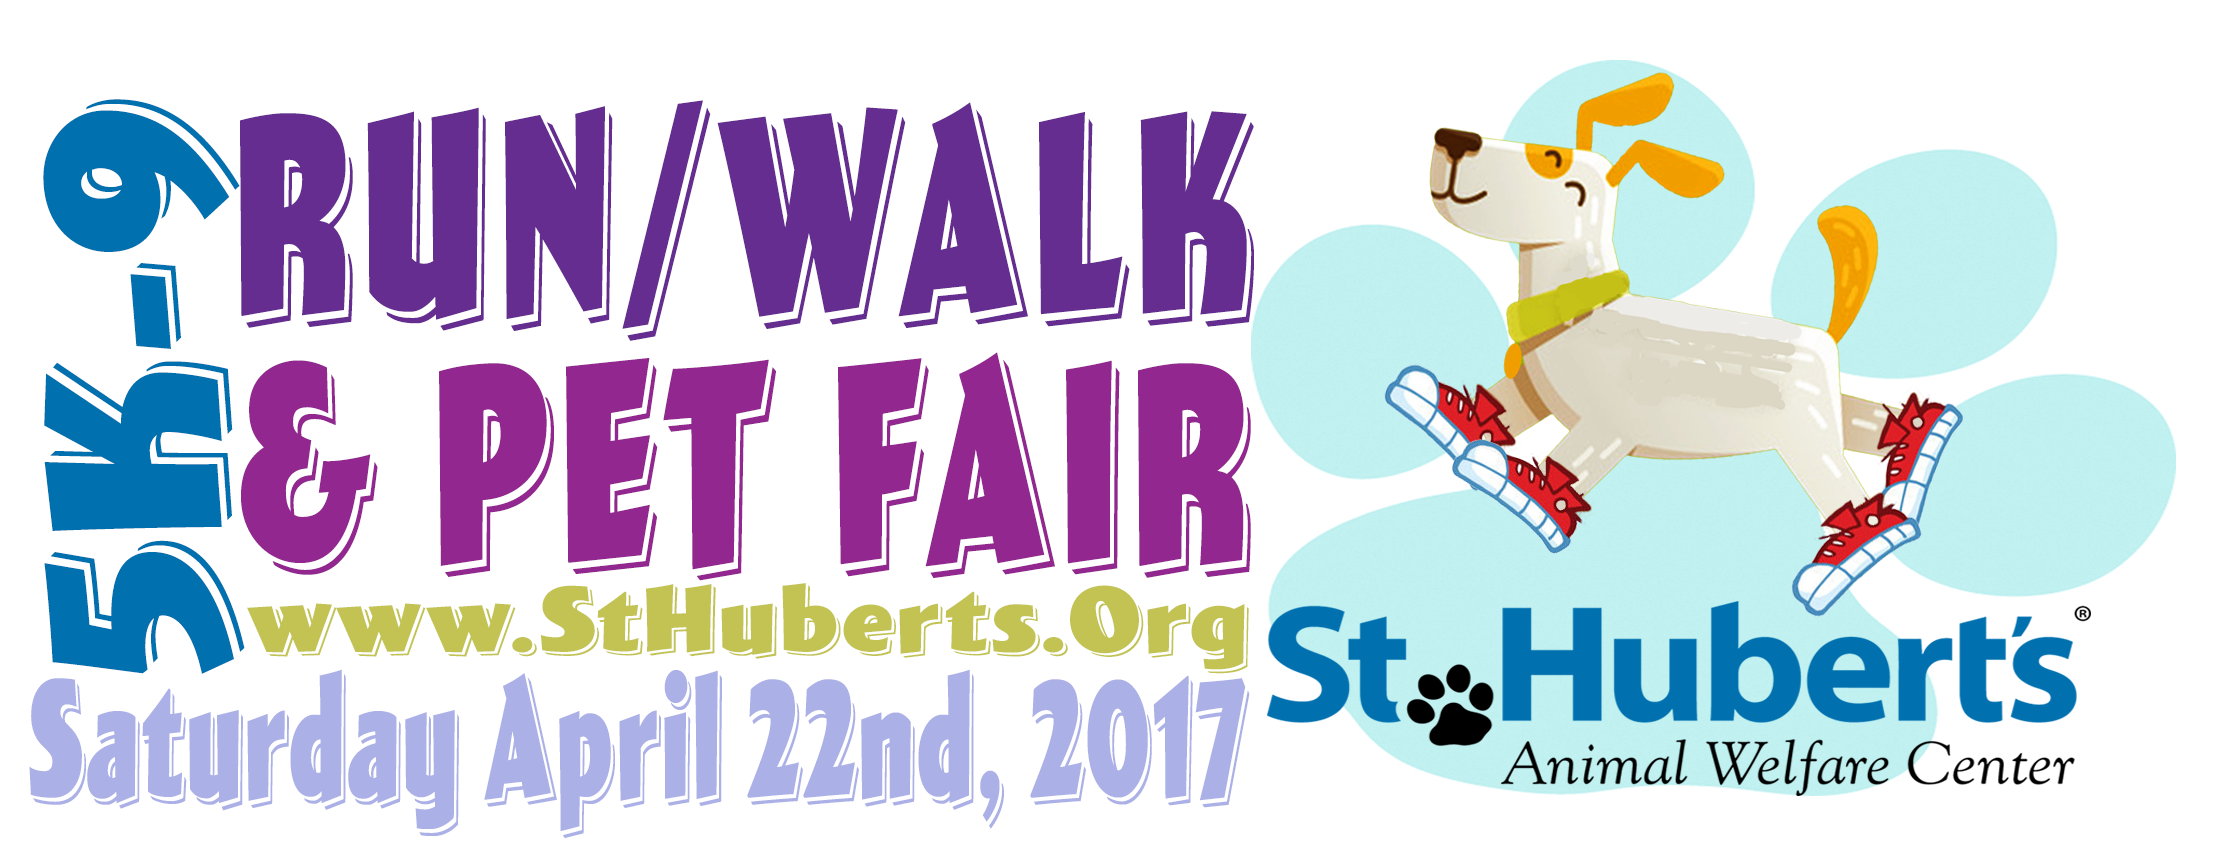 St. Hubert's 5K-9 Run/Walk & Pet Fair